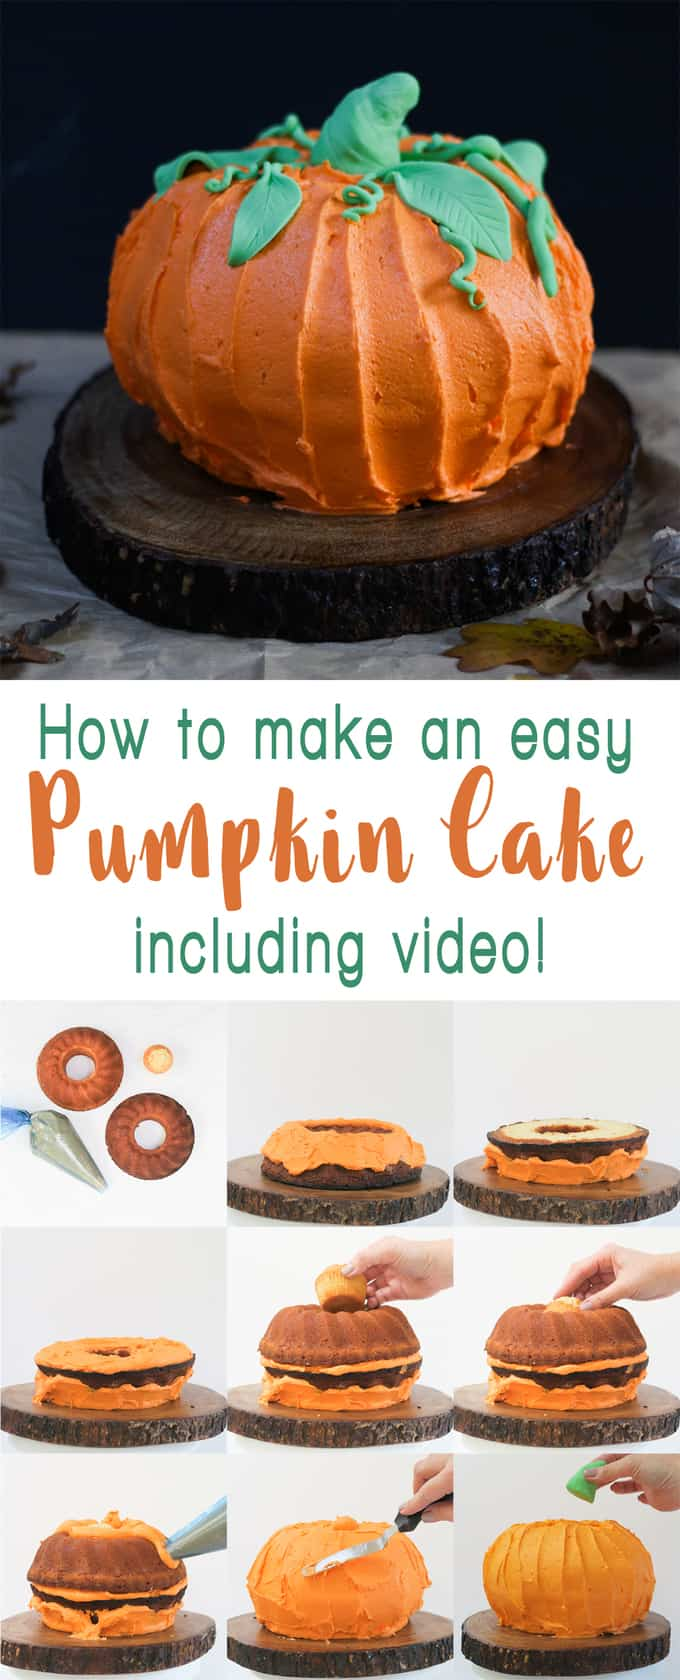 How to make a Pumpkin Bundt Cake - Perfect for Halloween, this easy peasy cake is so much fun to make! Filled with buttercream icing - the best frosting - kids will love this cake!